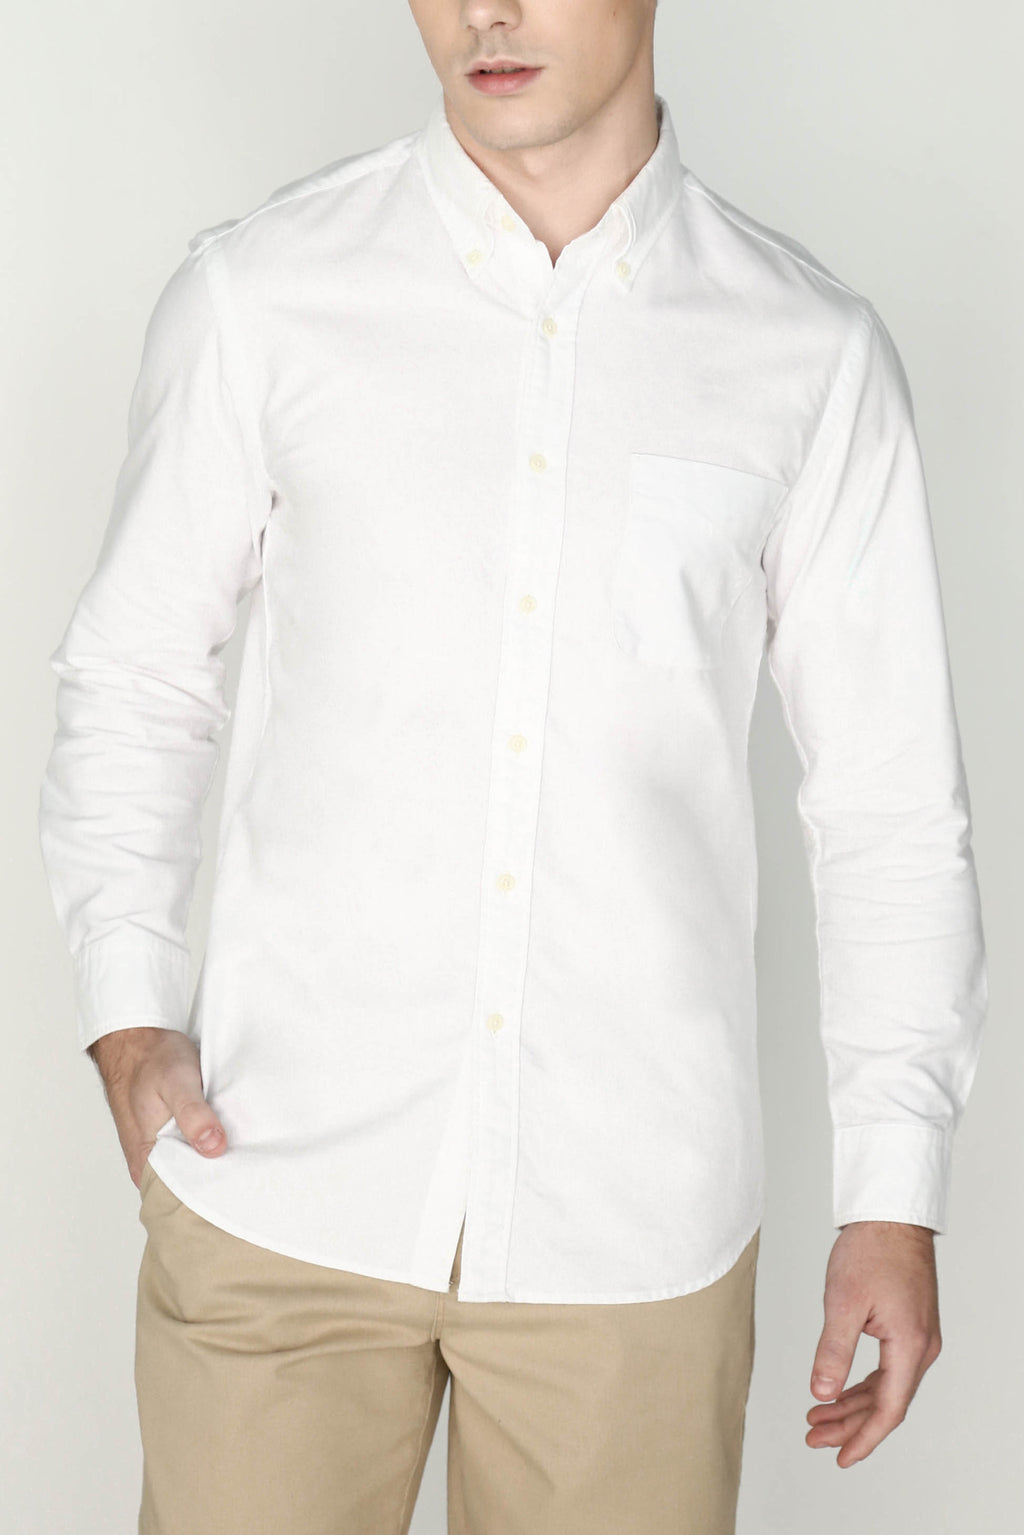 M's Lightweight Oxford Shirt (White)